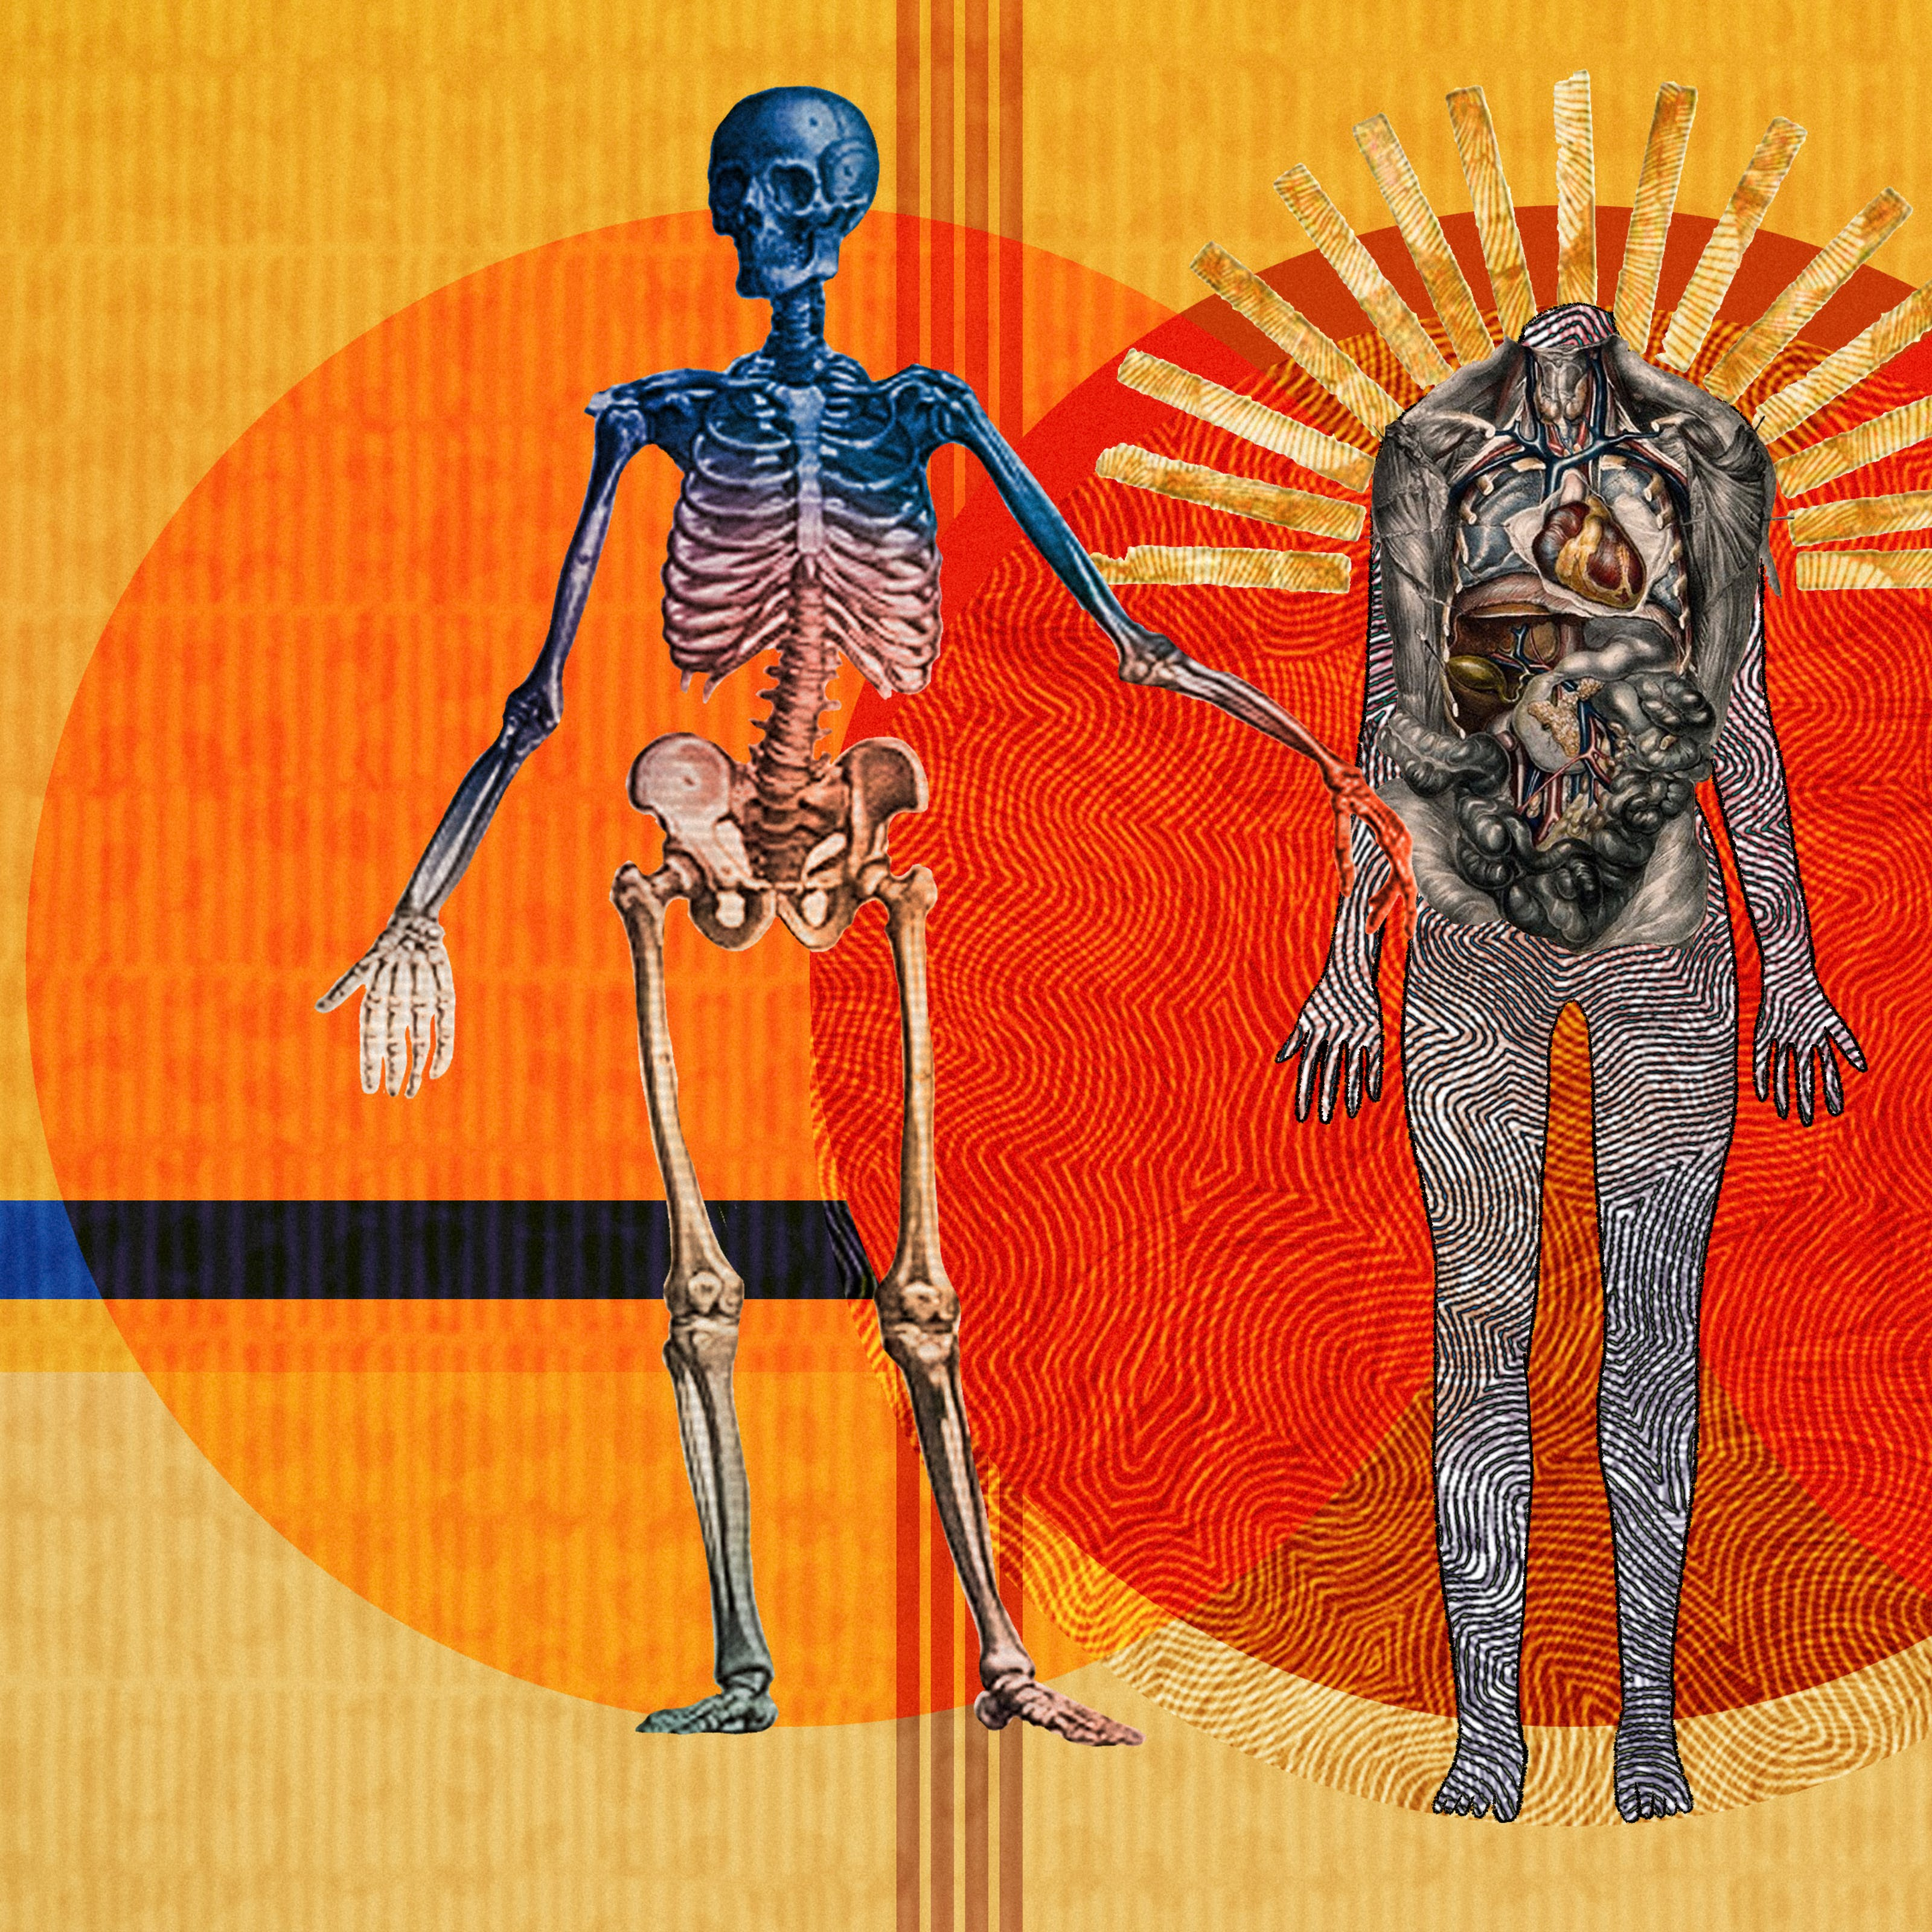 An abstract digital illustration featuring three anatomical depictions of the human body. The first shows the skeletal bone structure, the second reveals the major organs of the body and the third depicts the muscular structure. Circles of energy are shown to be radiating from each of the bodies, overlapping each other. The main colour combinations are yellows, reds and oranges. The background shapes contain textures and patterns.